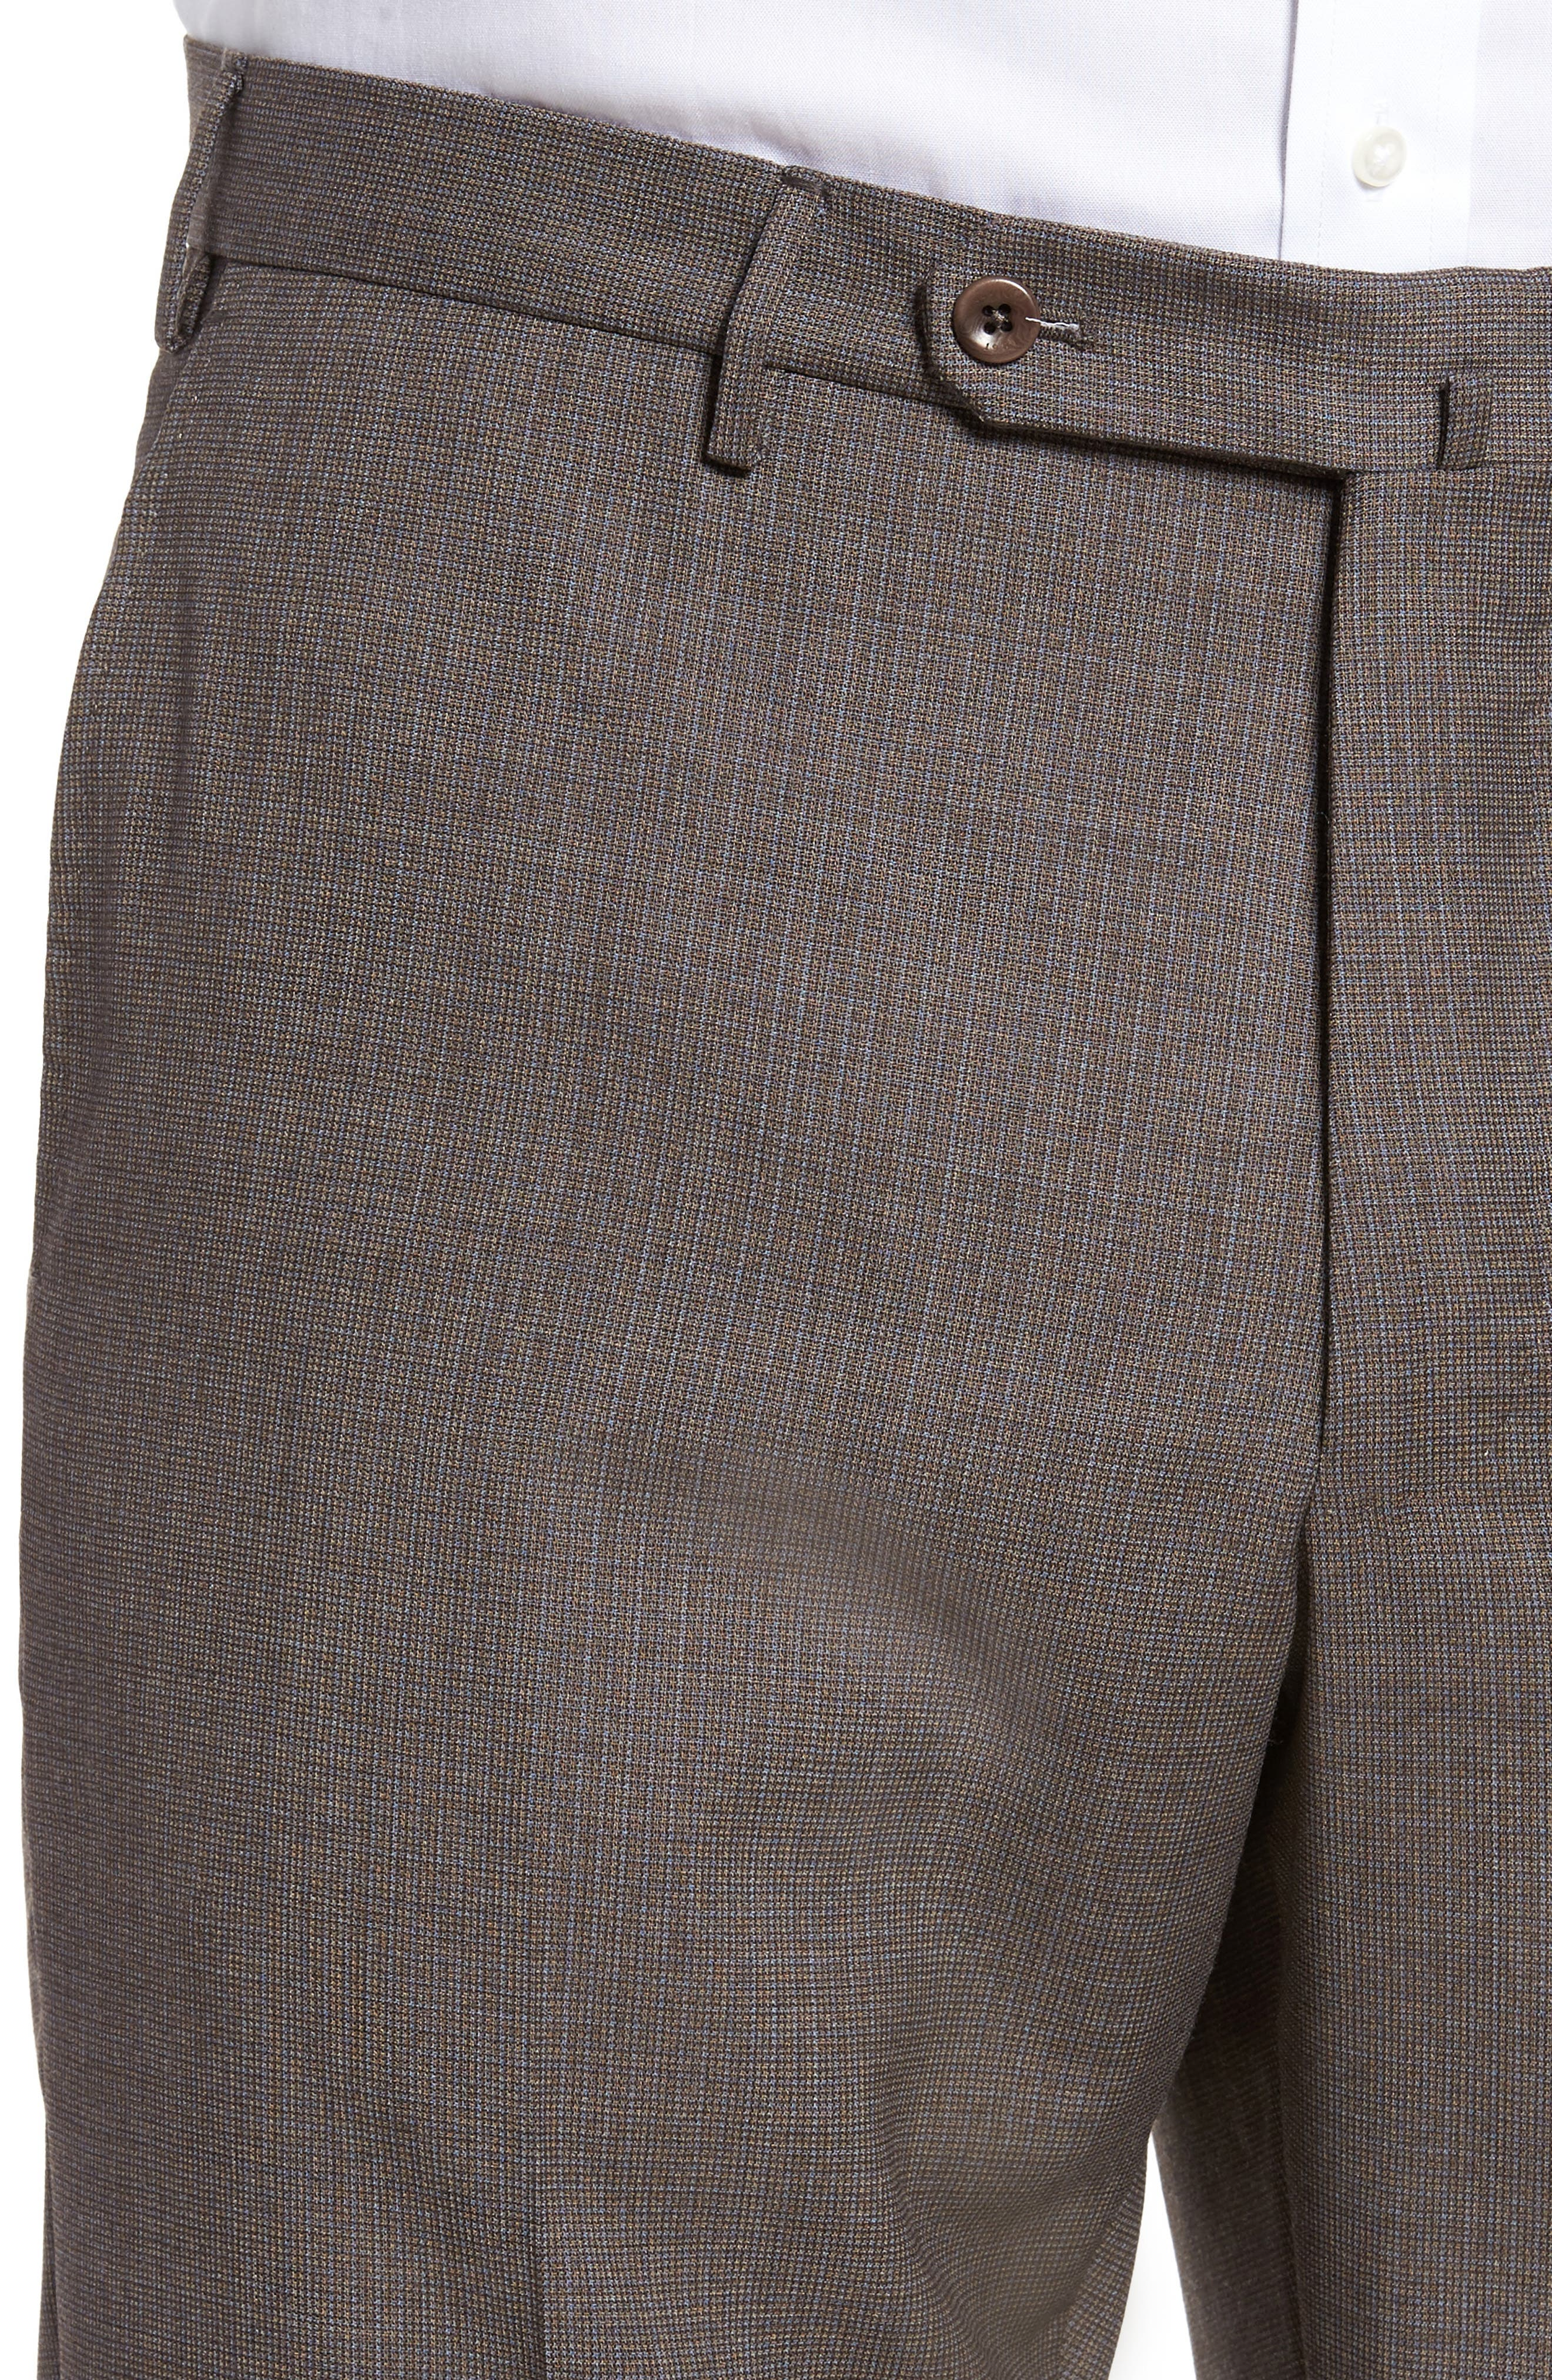 Alternate Image 4  - Incotex Benson Flat Front Wool Trousers